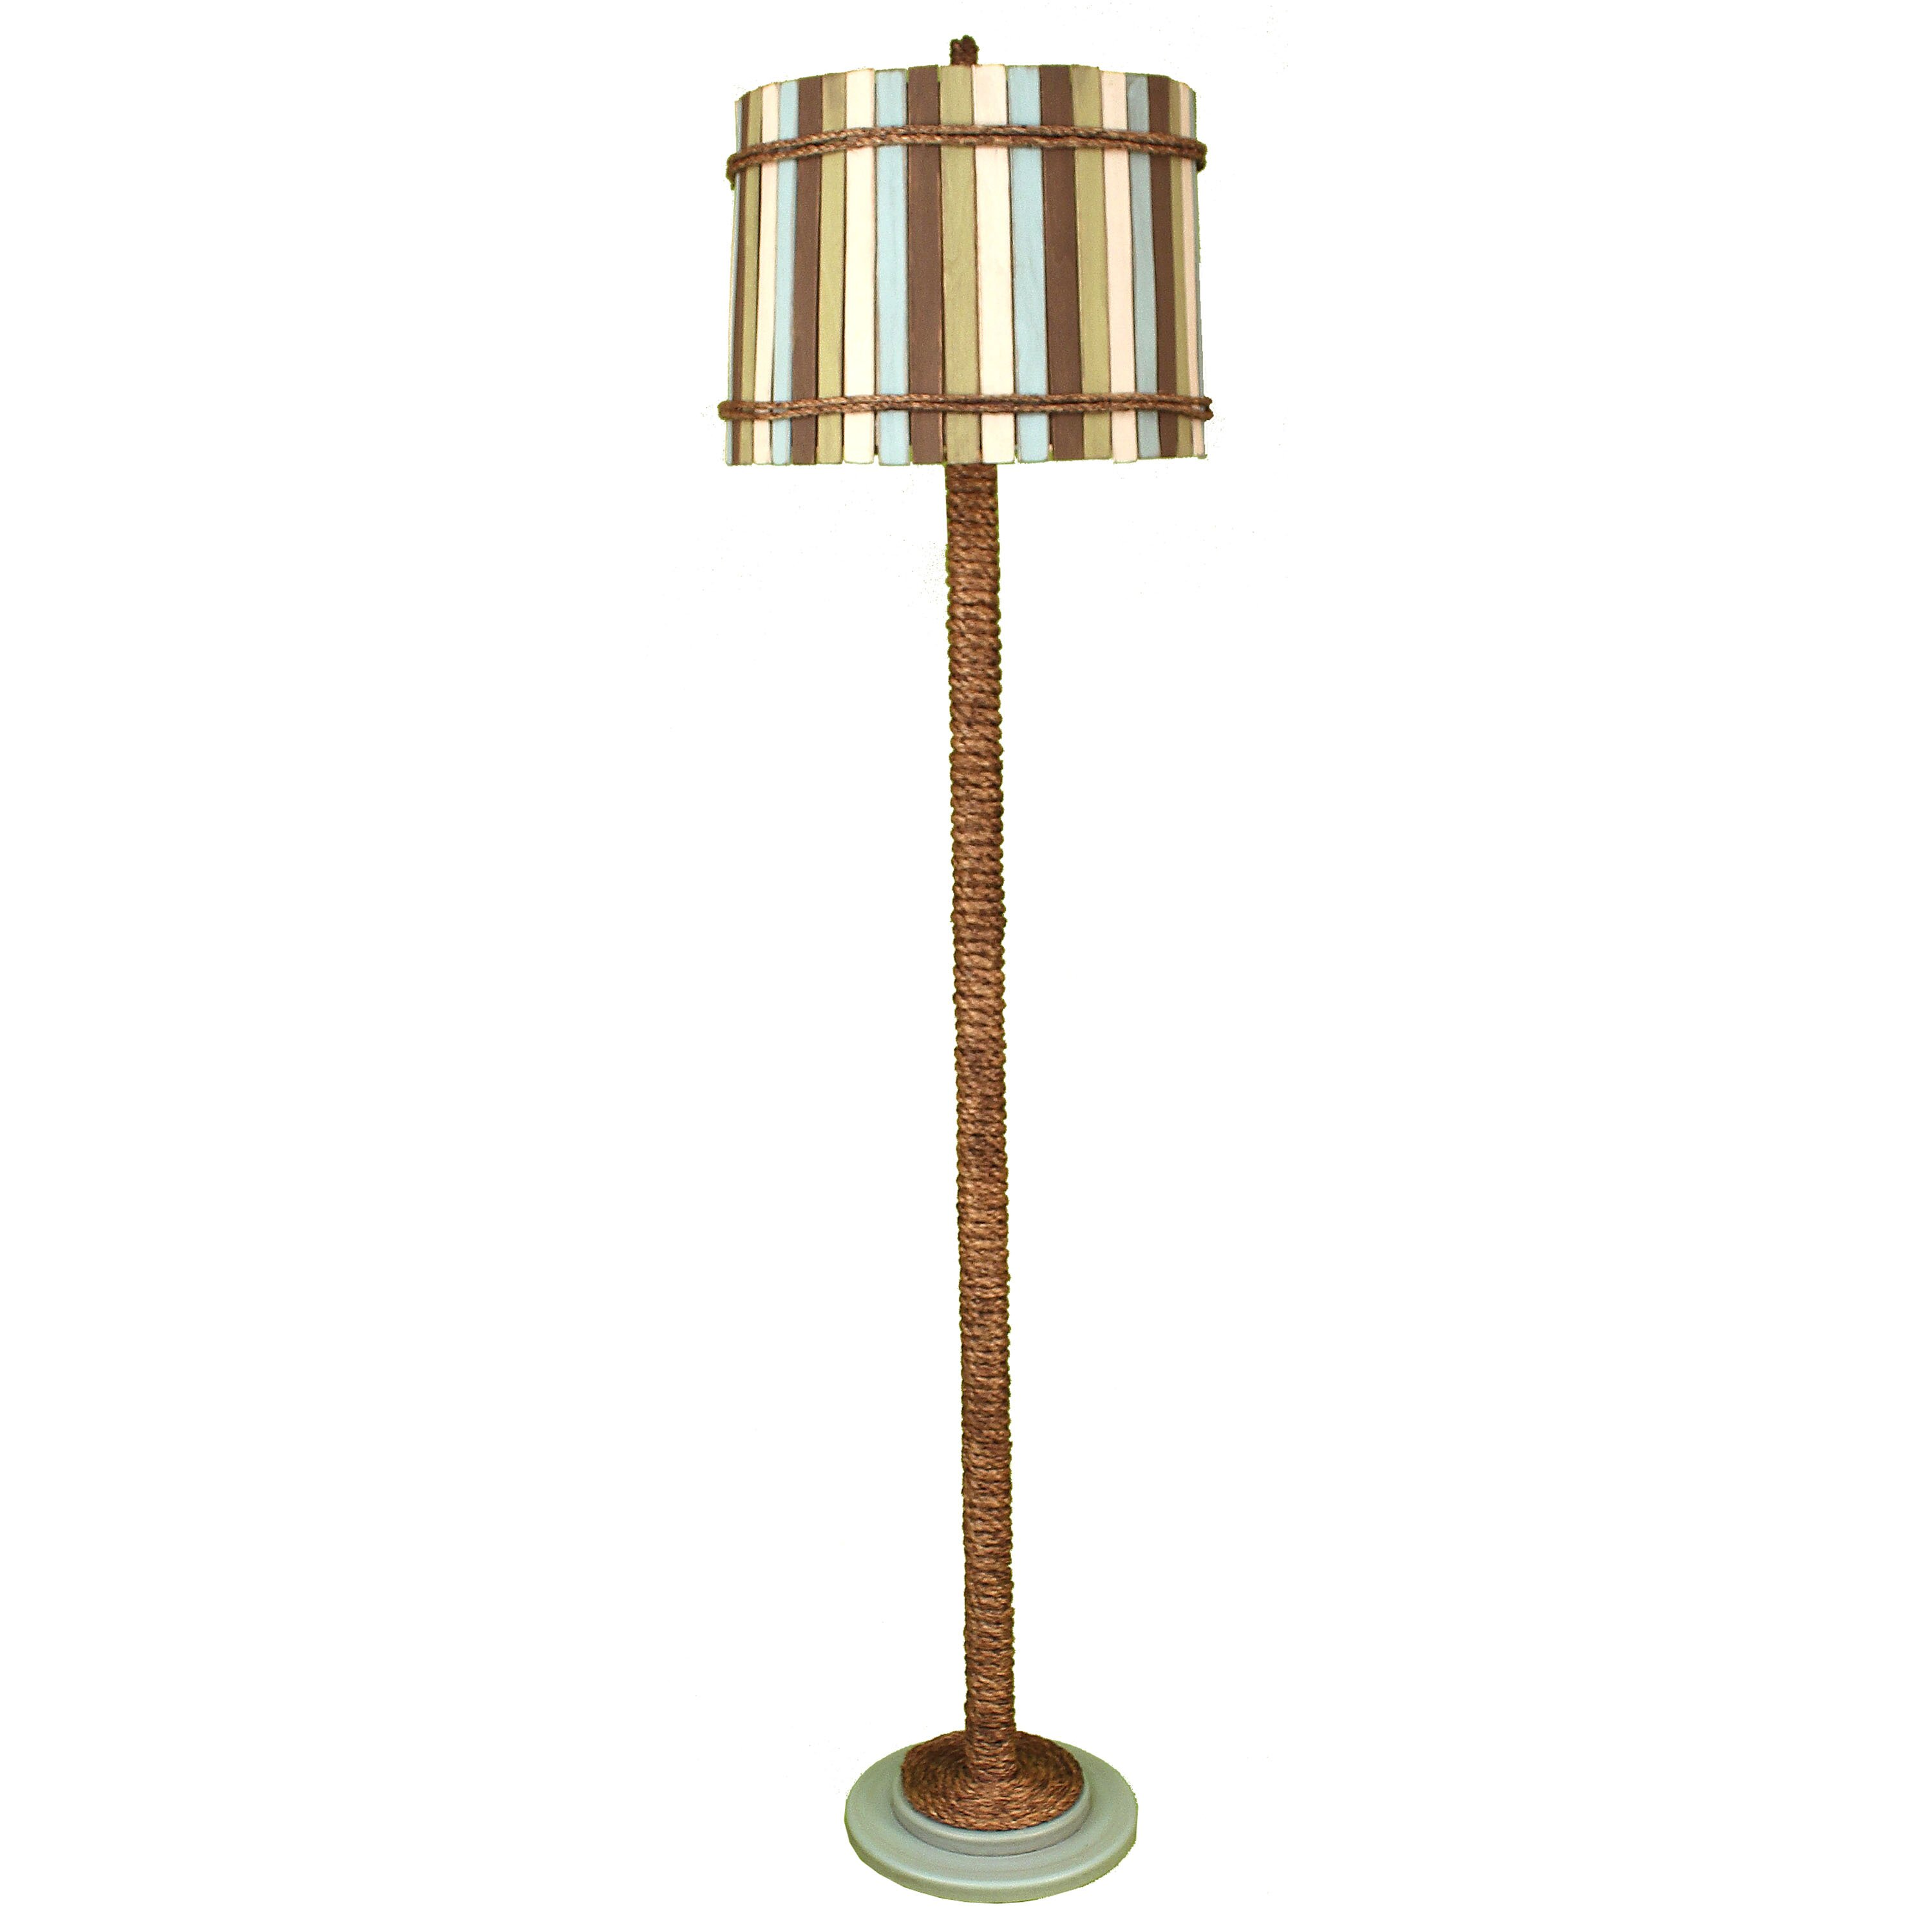 coast lamp mfg coastal living manila rope 64 floor lamp reviews. Black Bedroom Furniture Sets. Home Design Ideas